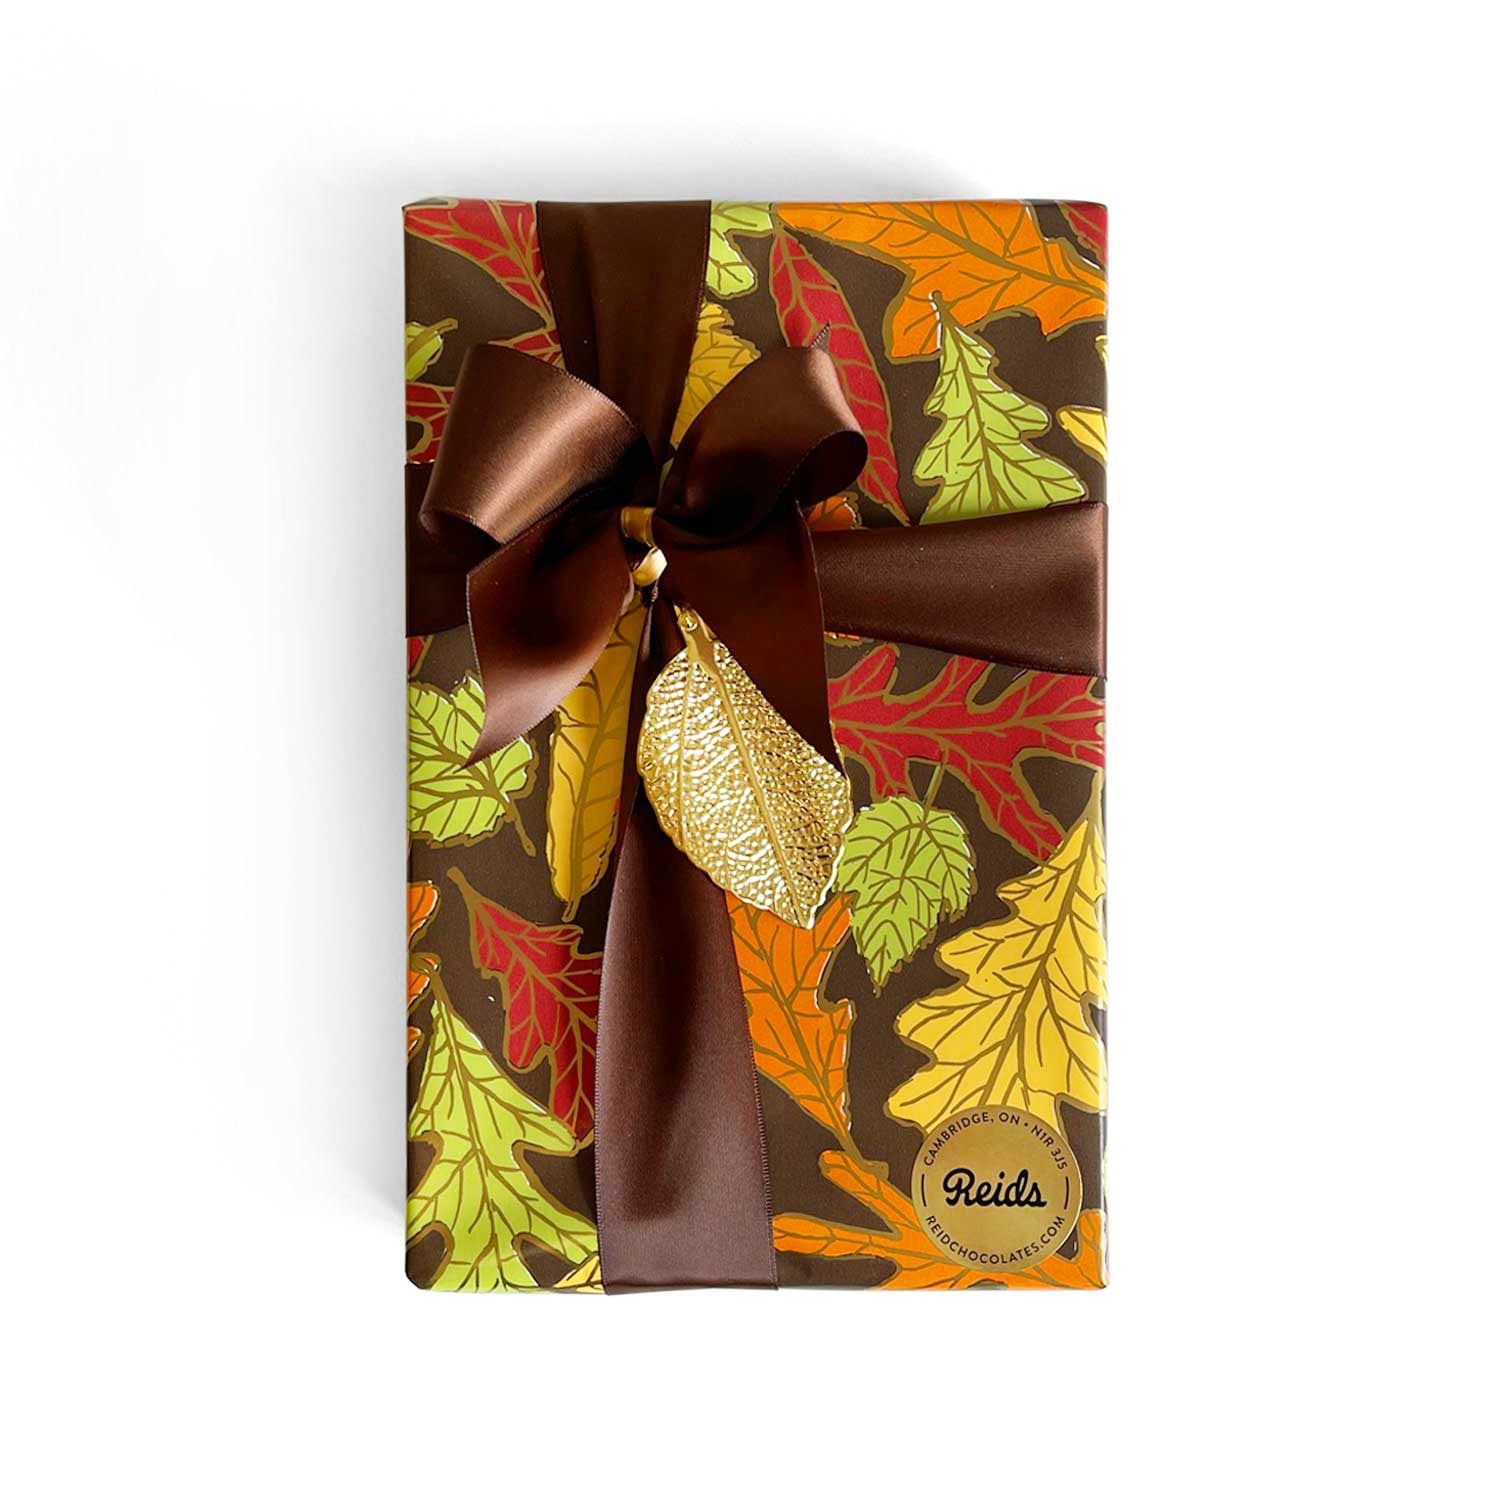 1 lb box of assorted chocolates wrapped for the fall season